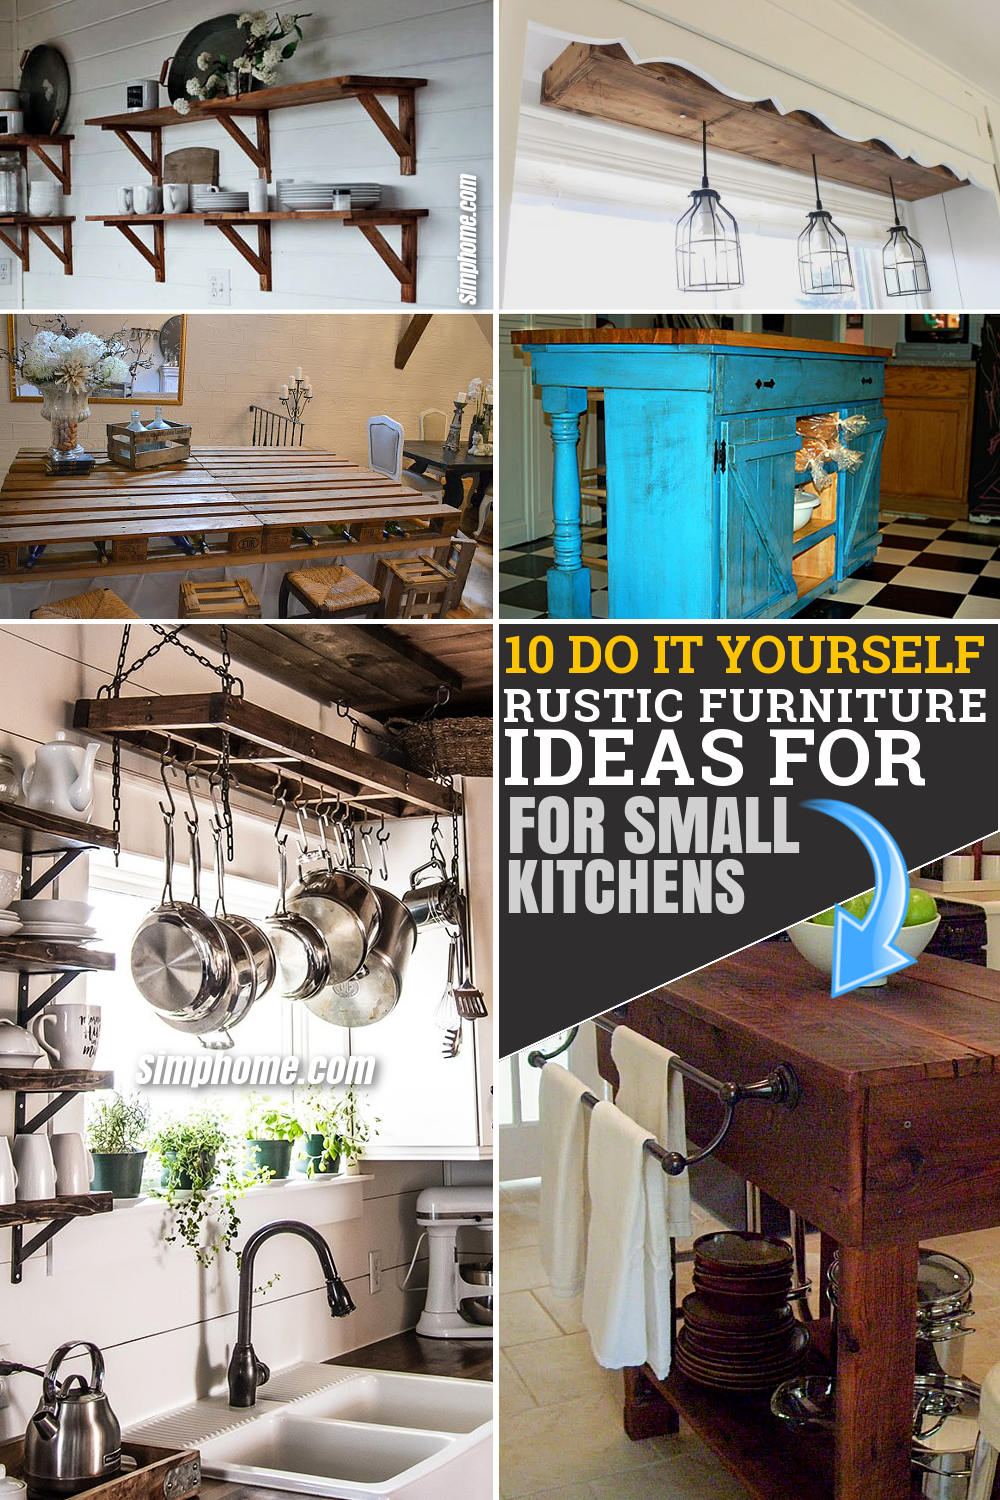 10 DIY rustic furniture projects for a Small Kitchen via SIMPHOME.COM Featured Pinterest Image